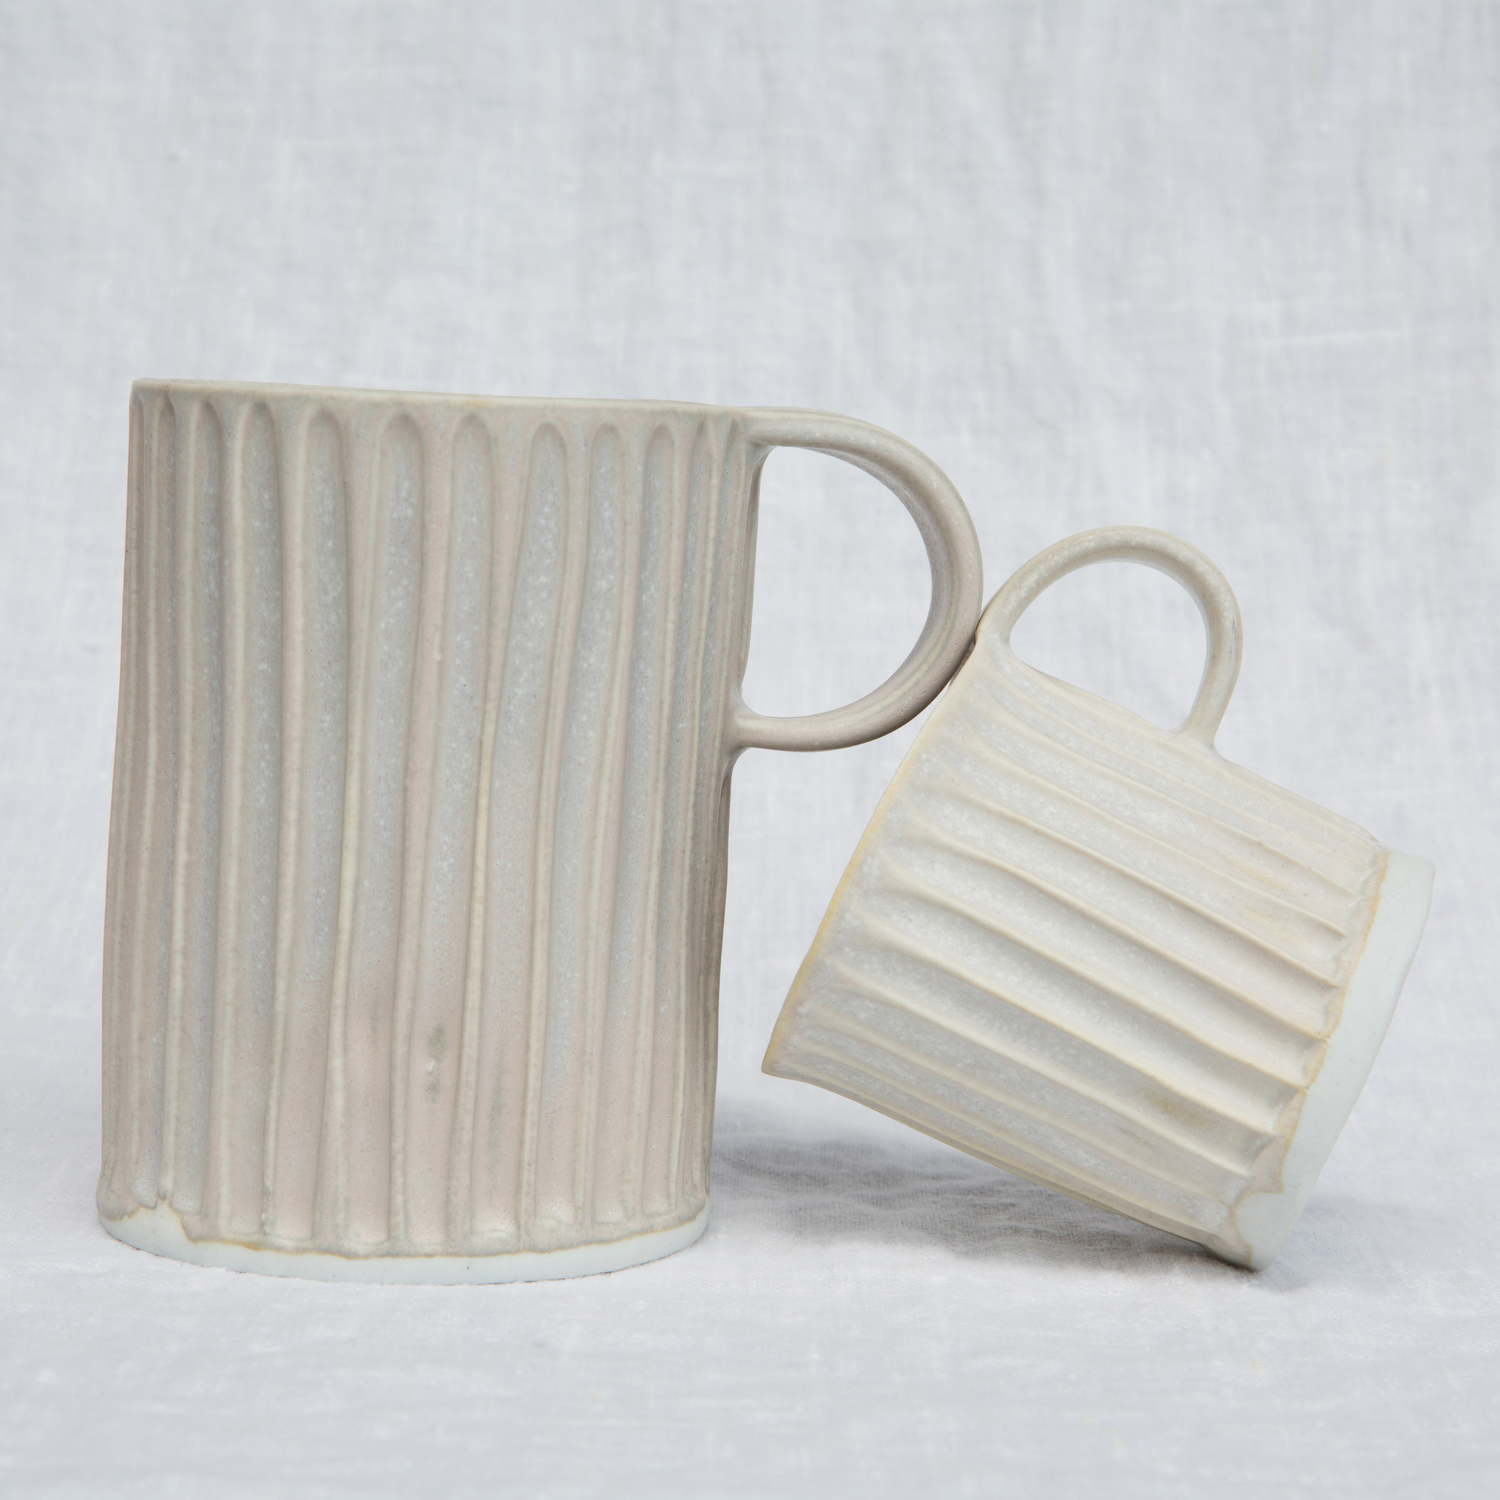 Mt. Washington Pottery - Column Mug $60